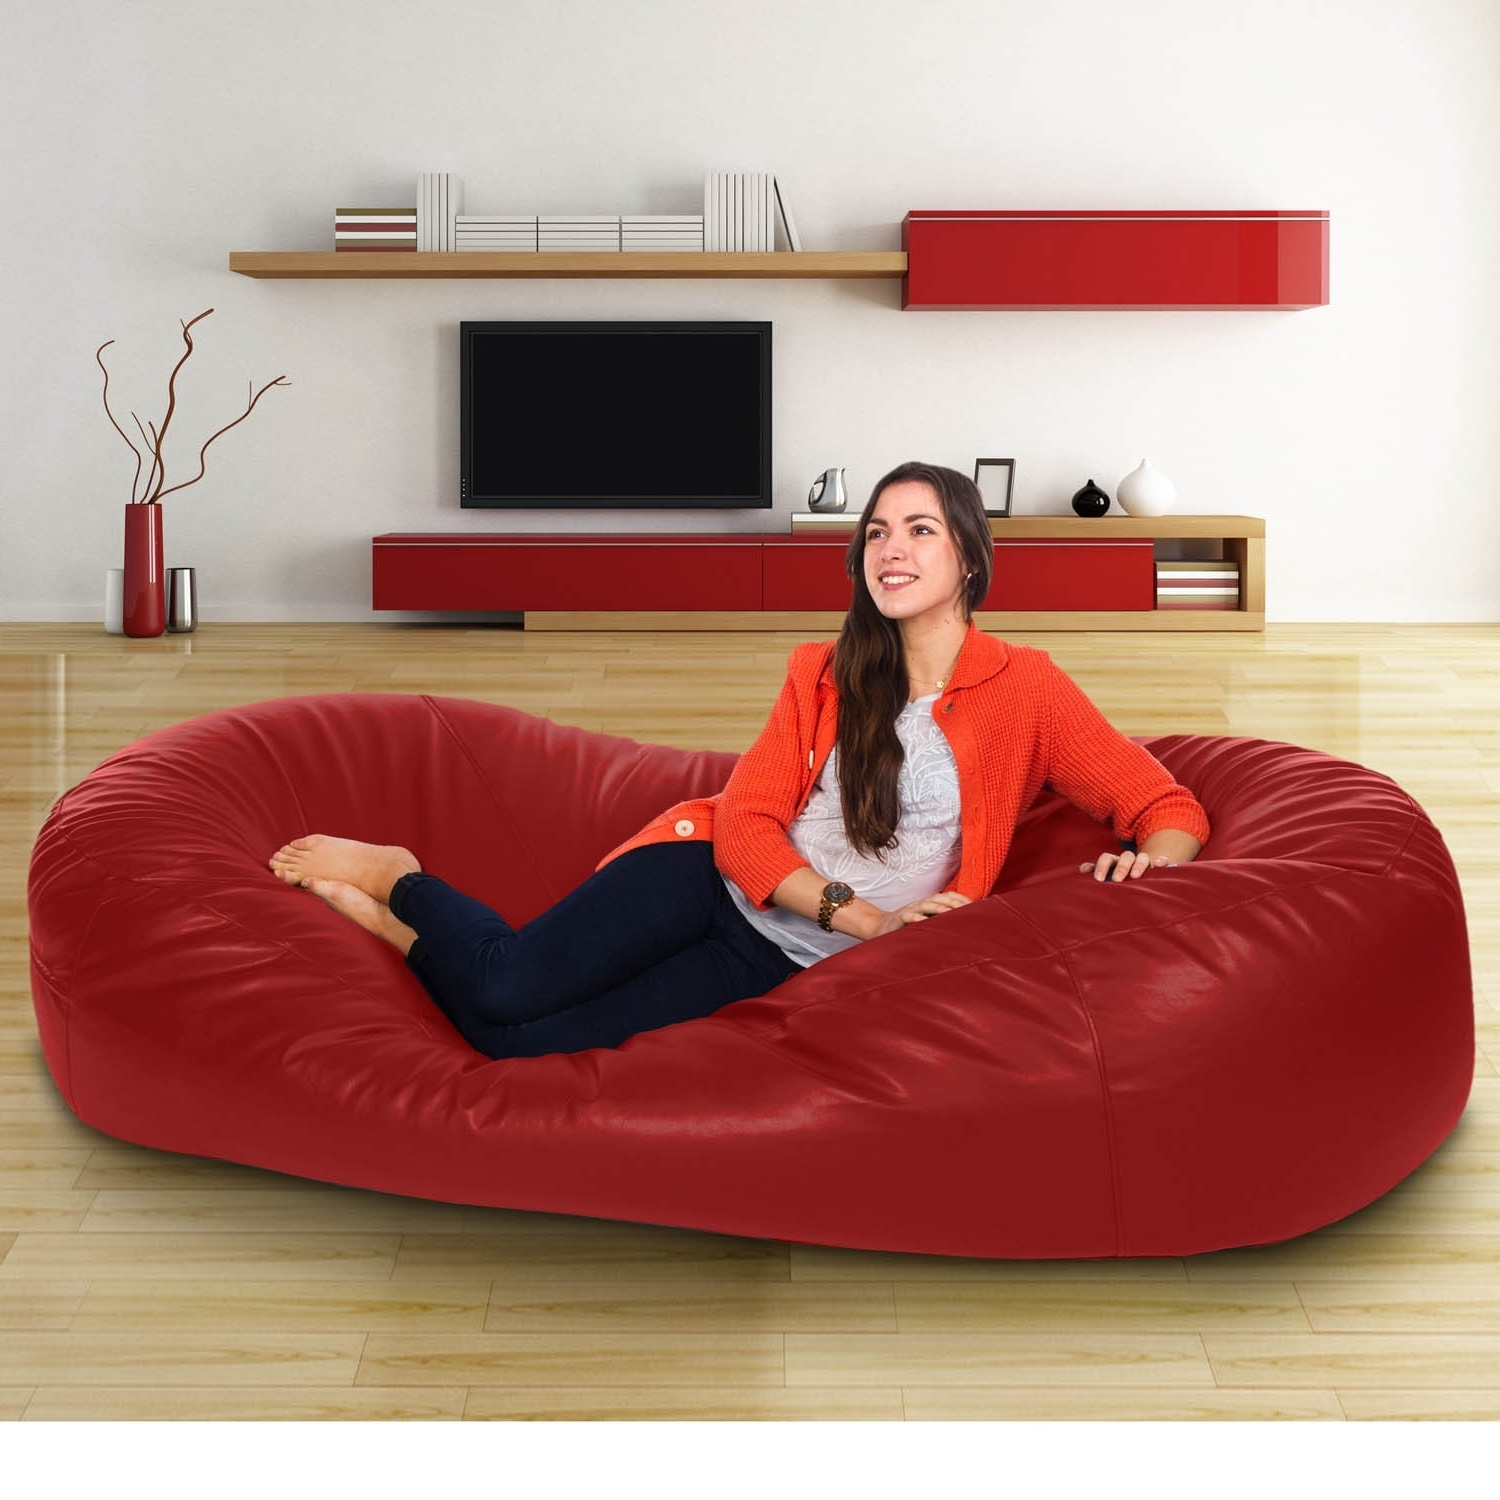 Latest Ideas To Clean Bean Bag Couch — Cabinets, Beds, Sofas And Pertaining To Bean Bag Sofas (View 13 of 20)